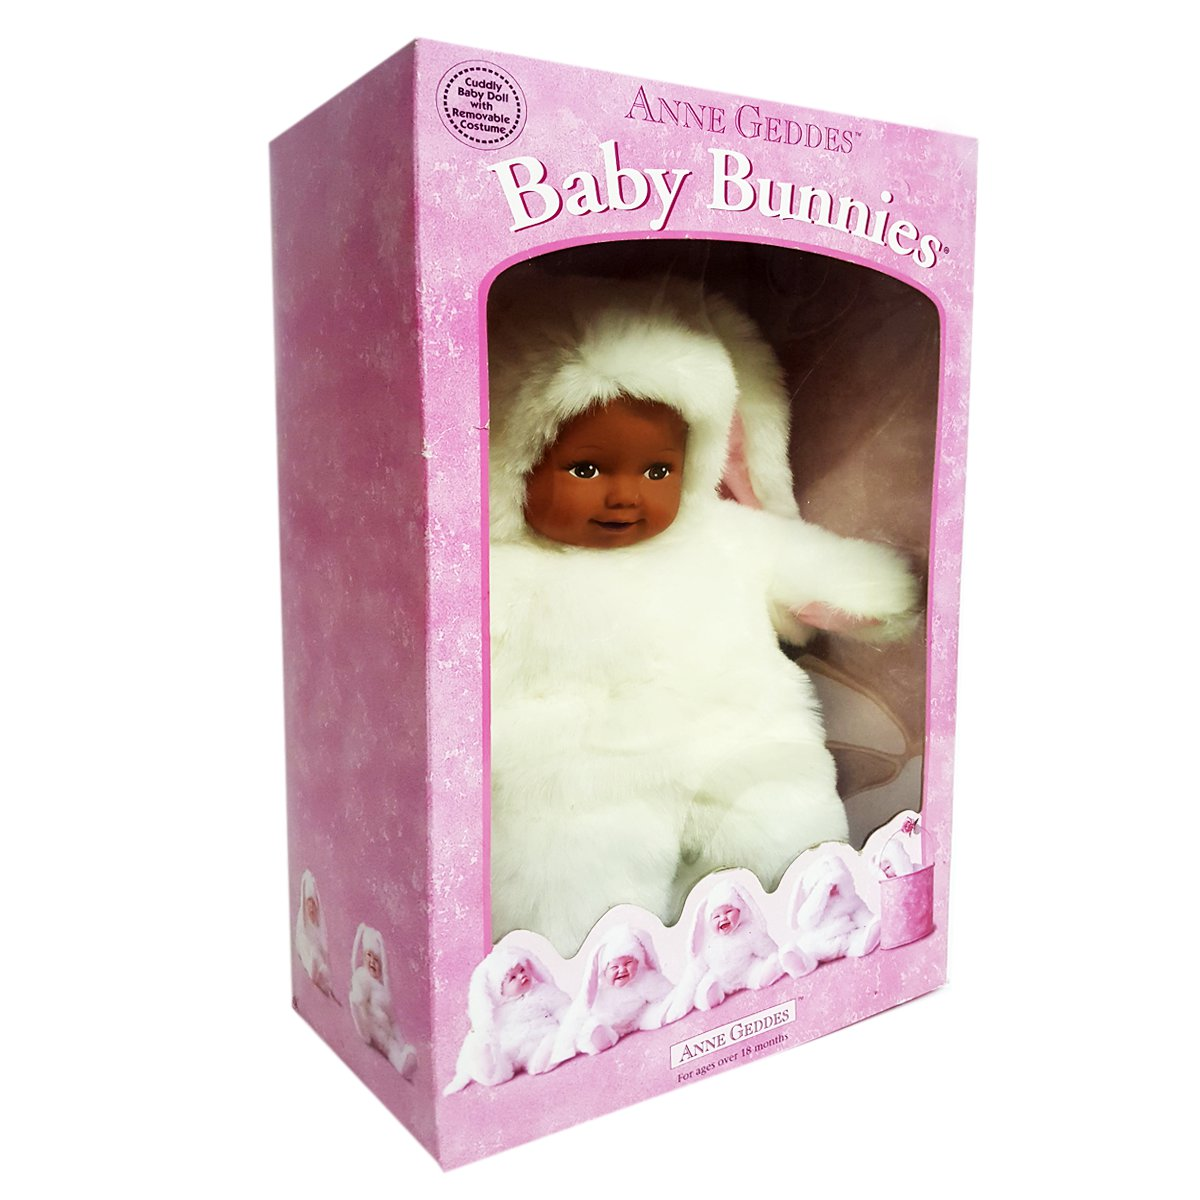 """1997 Anne Geddes Baby Bunnies Doll 15"""" Ethnic African American Ages 18+ Months by Unimax Toys"""